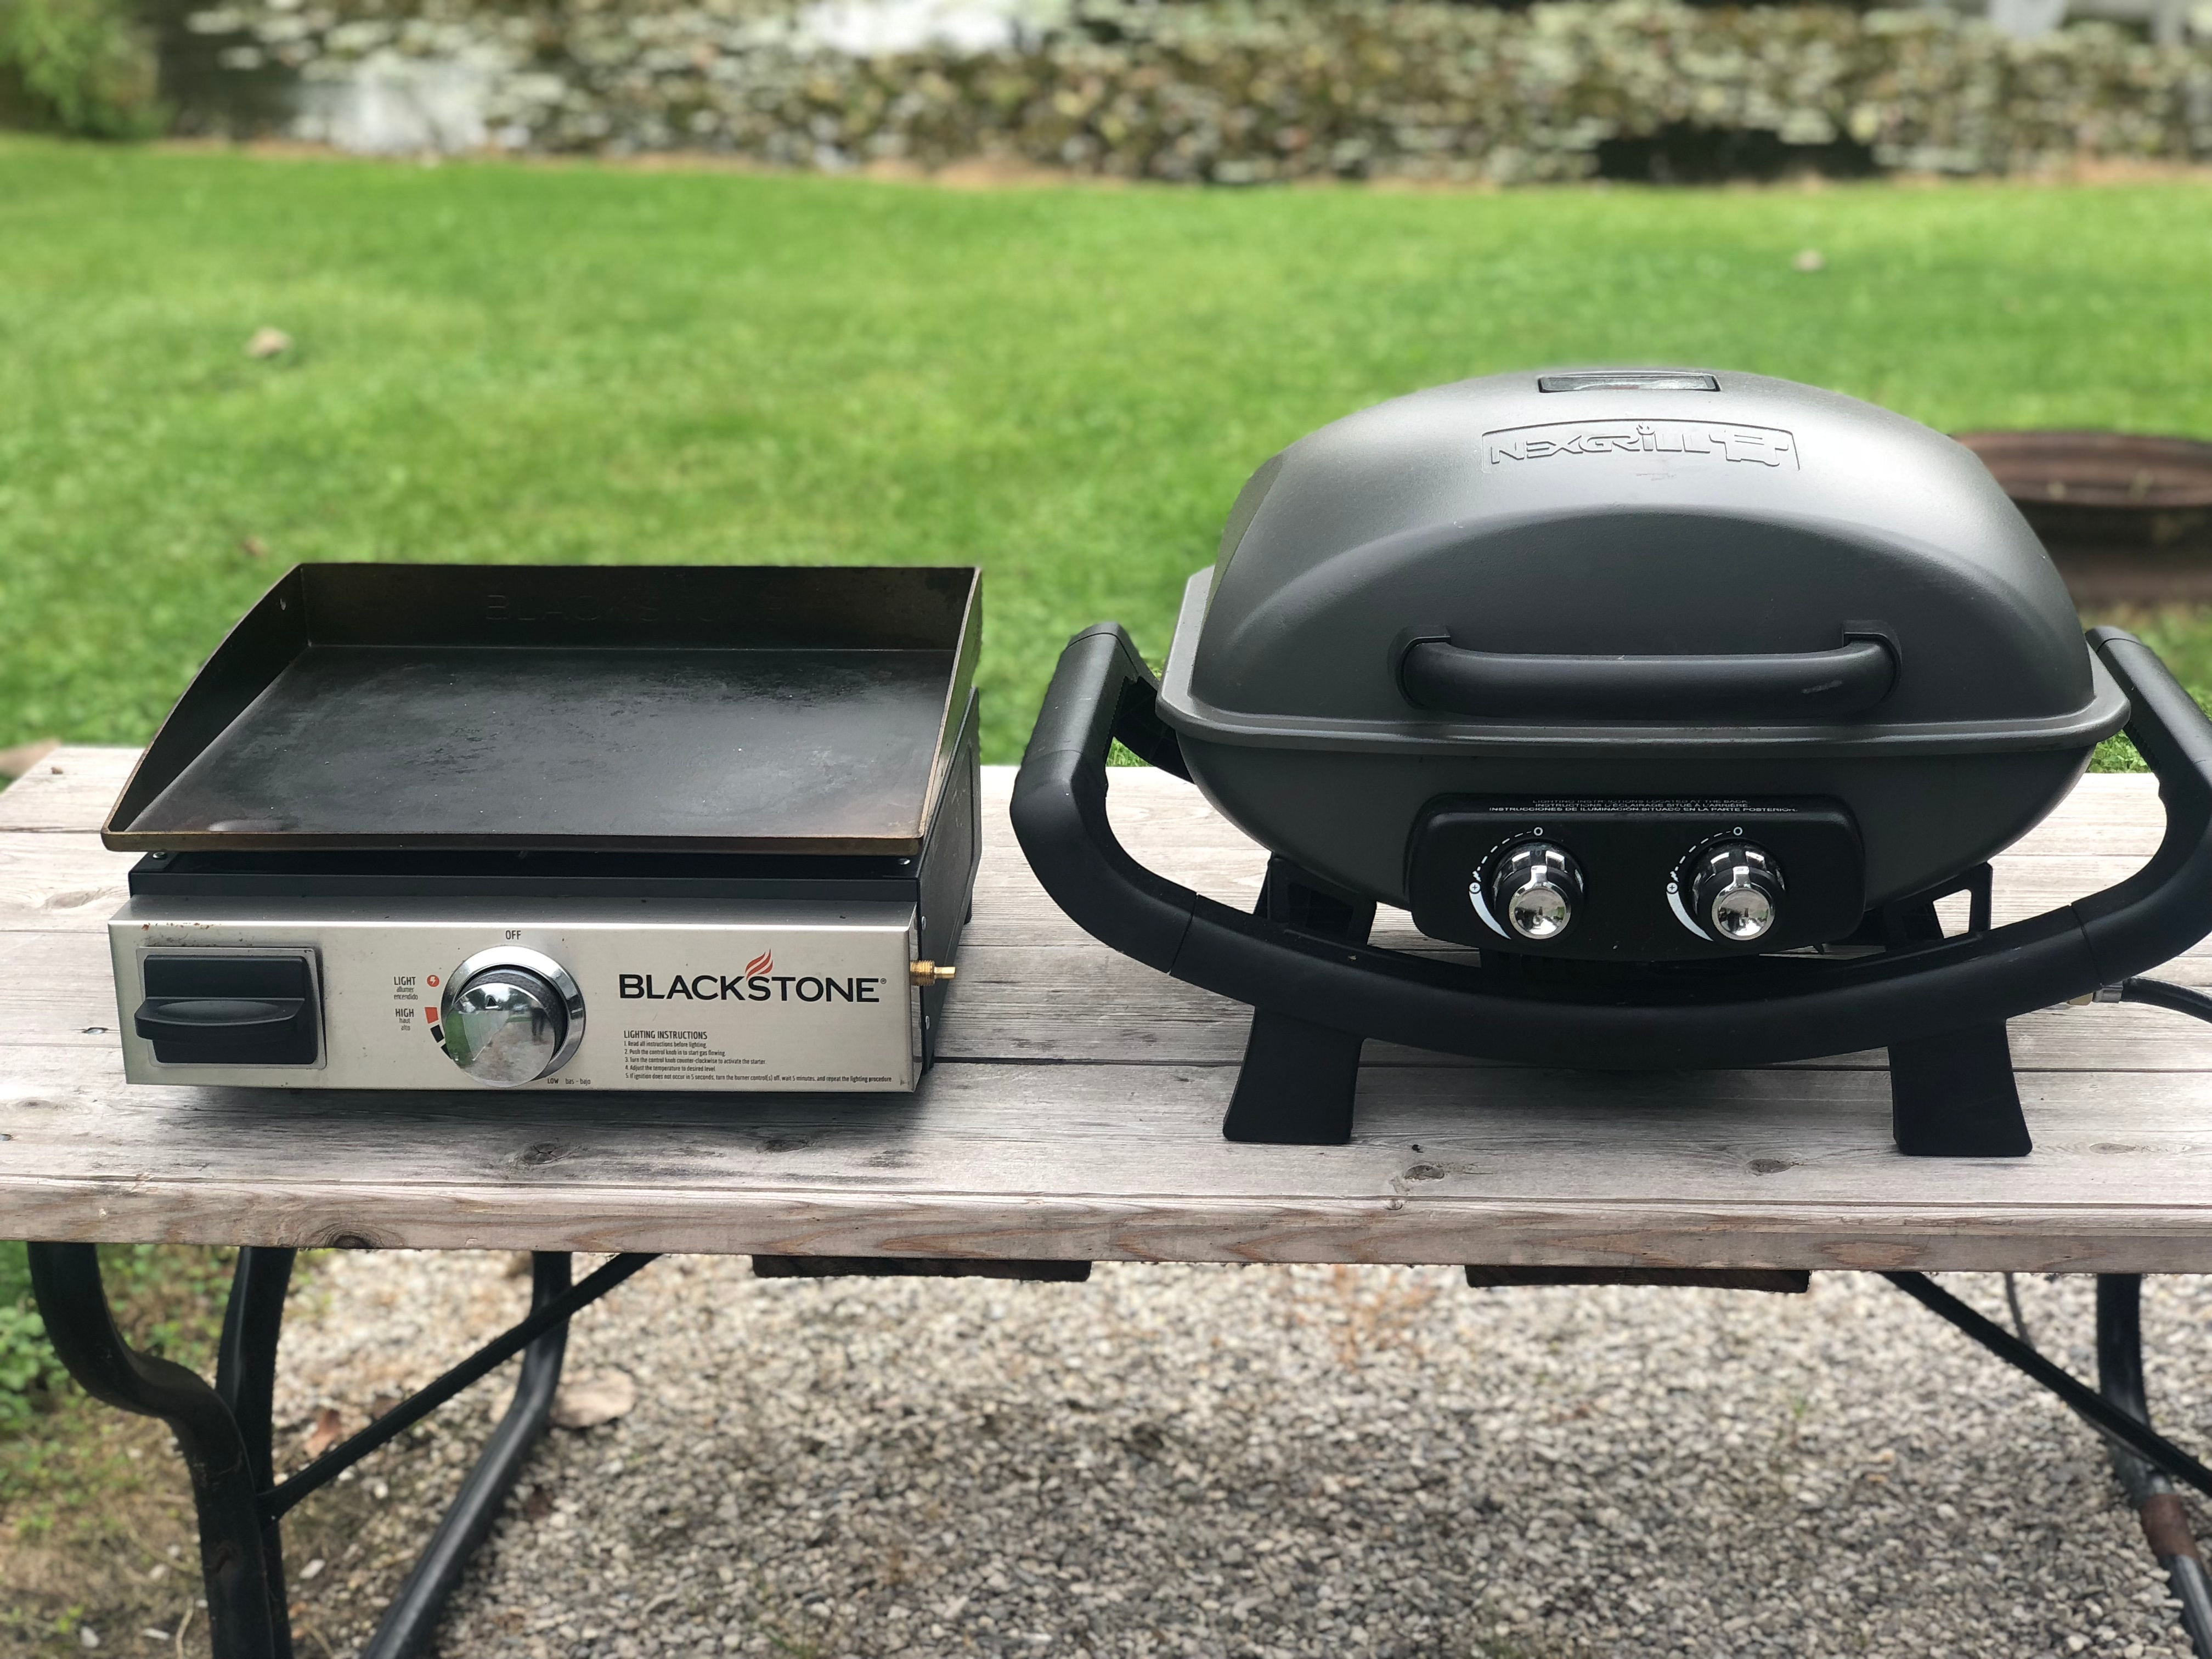 Use propane grills and griddles for versatile outdoor cooking options